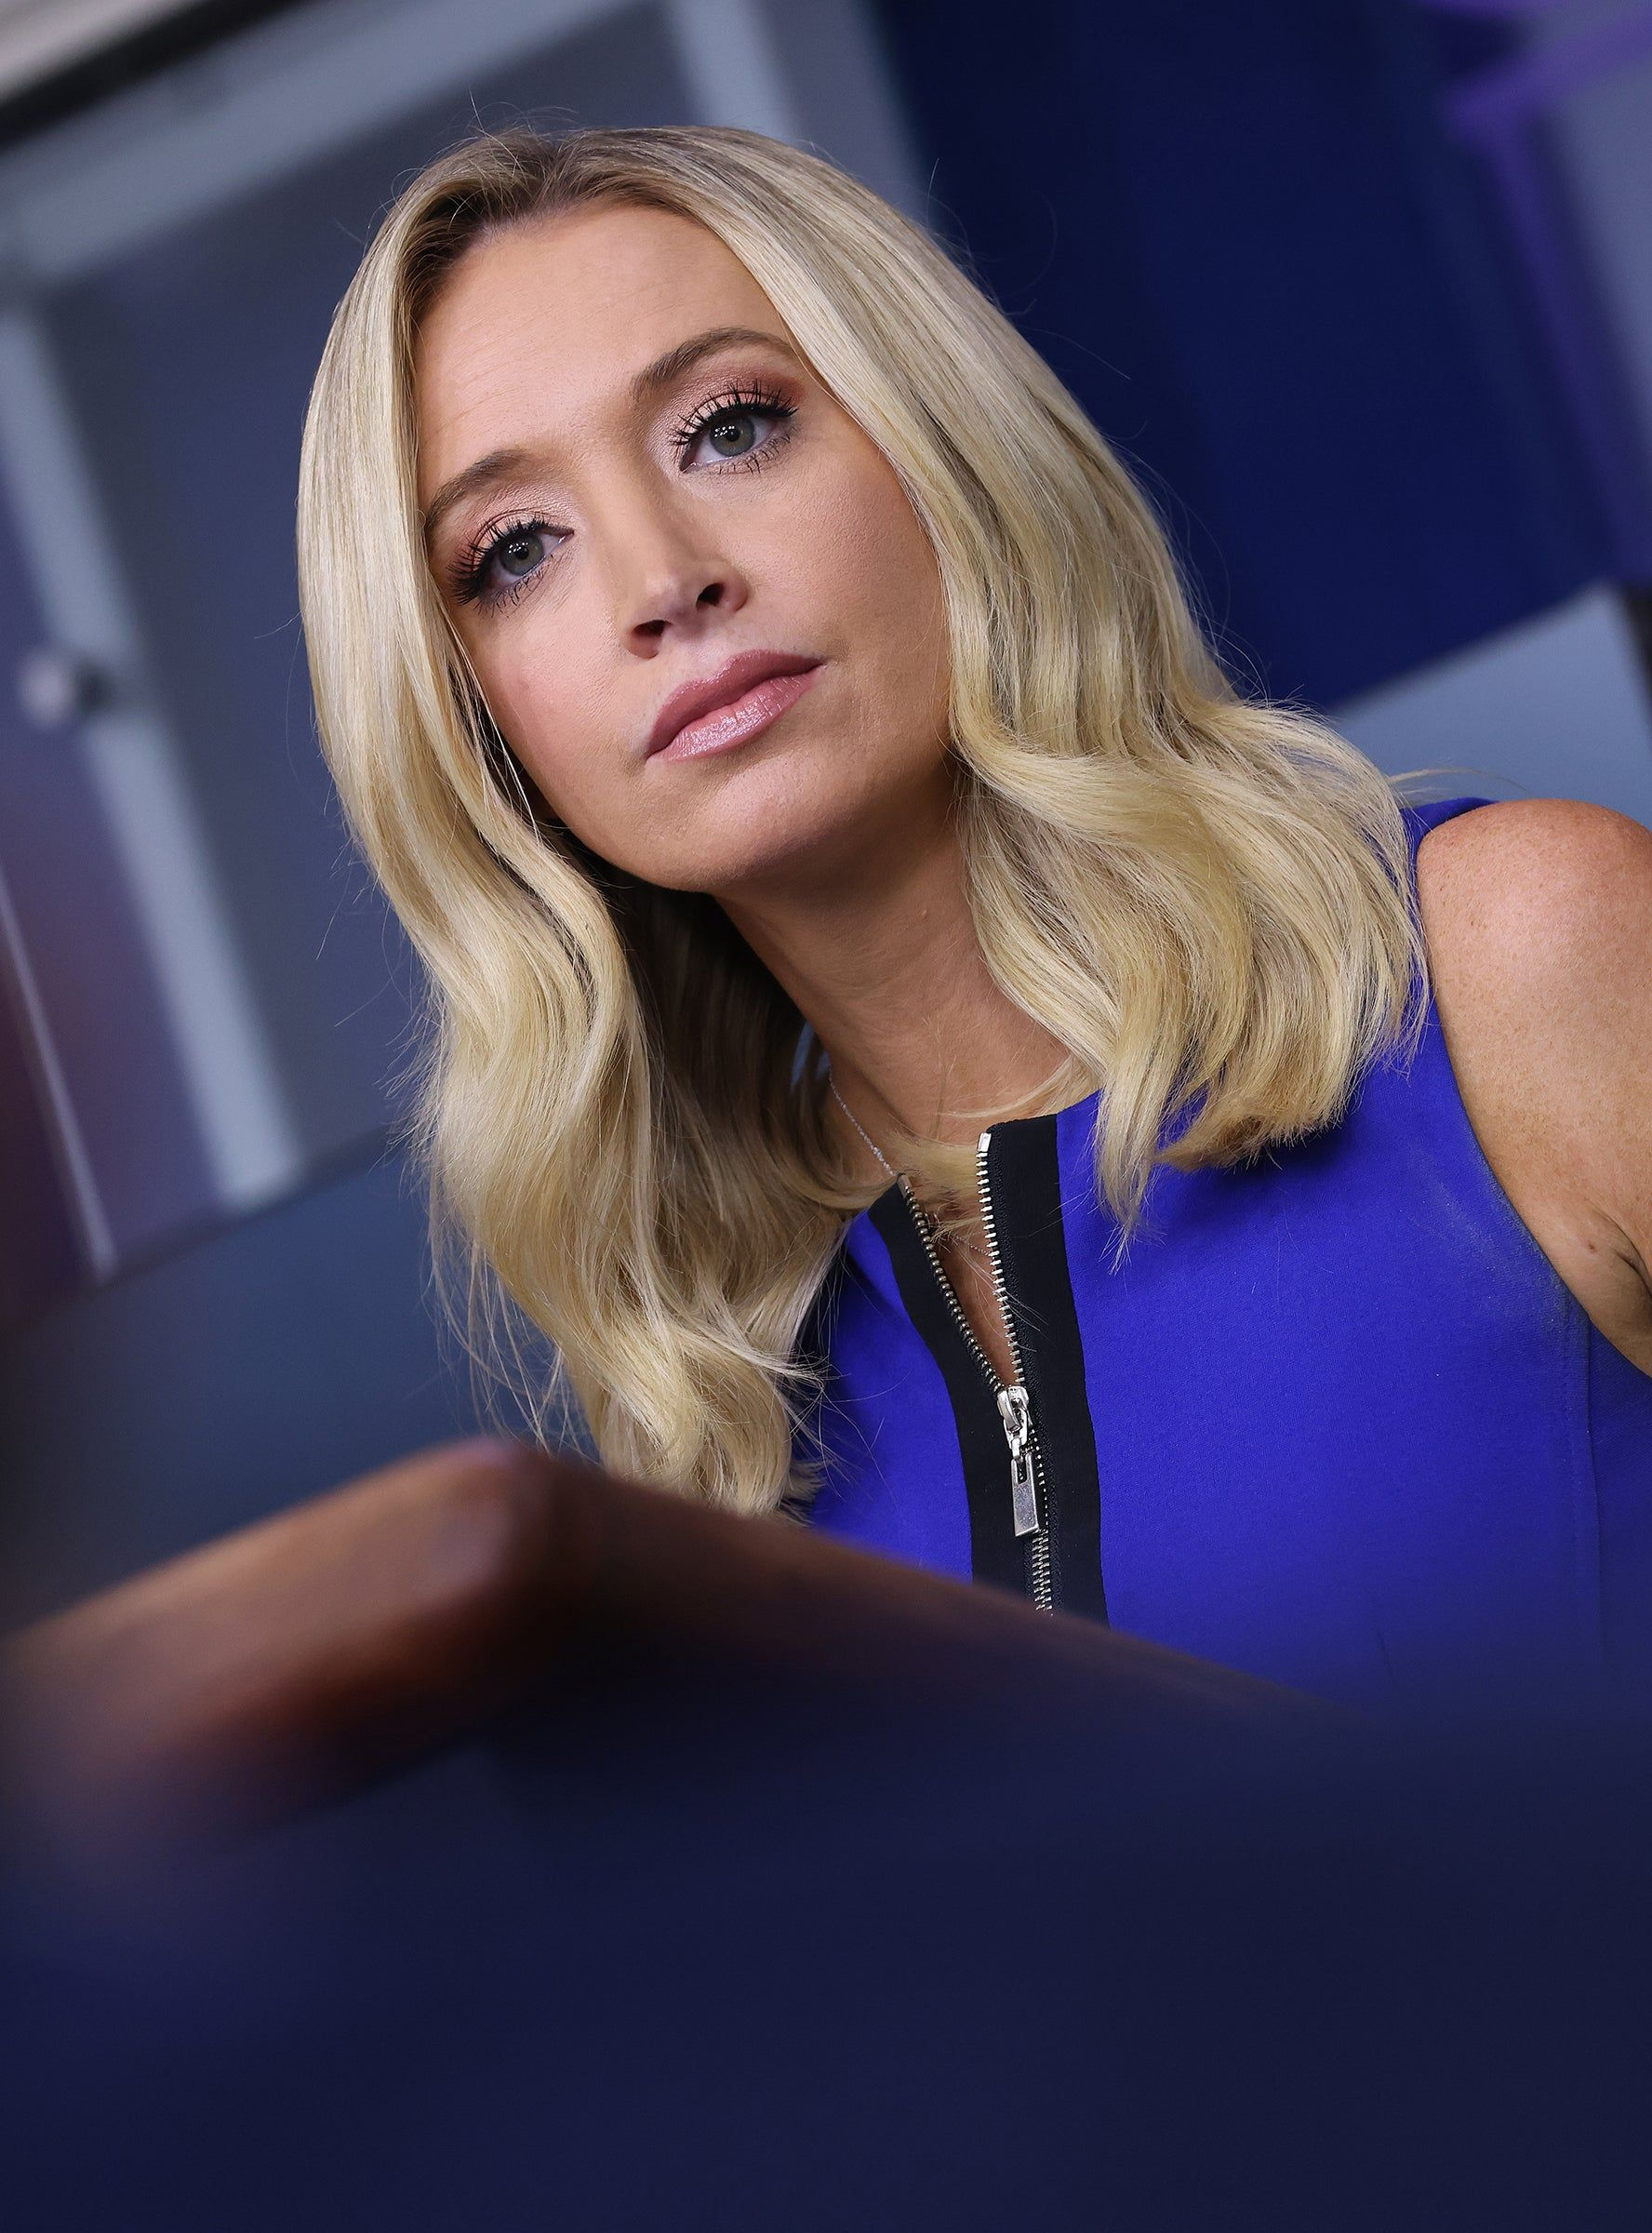 The 20 Biggest Lies Kayleigh Mcenany Has Told So Far In 2020 Kayleigh Mcenany Folder Labels Star Fashion